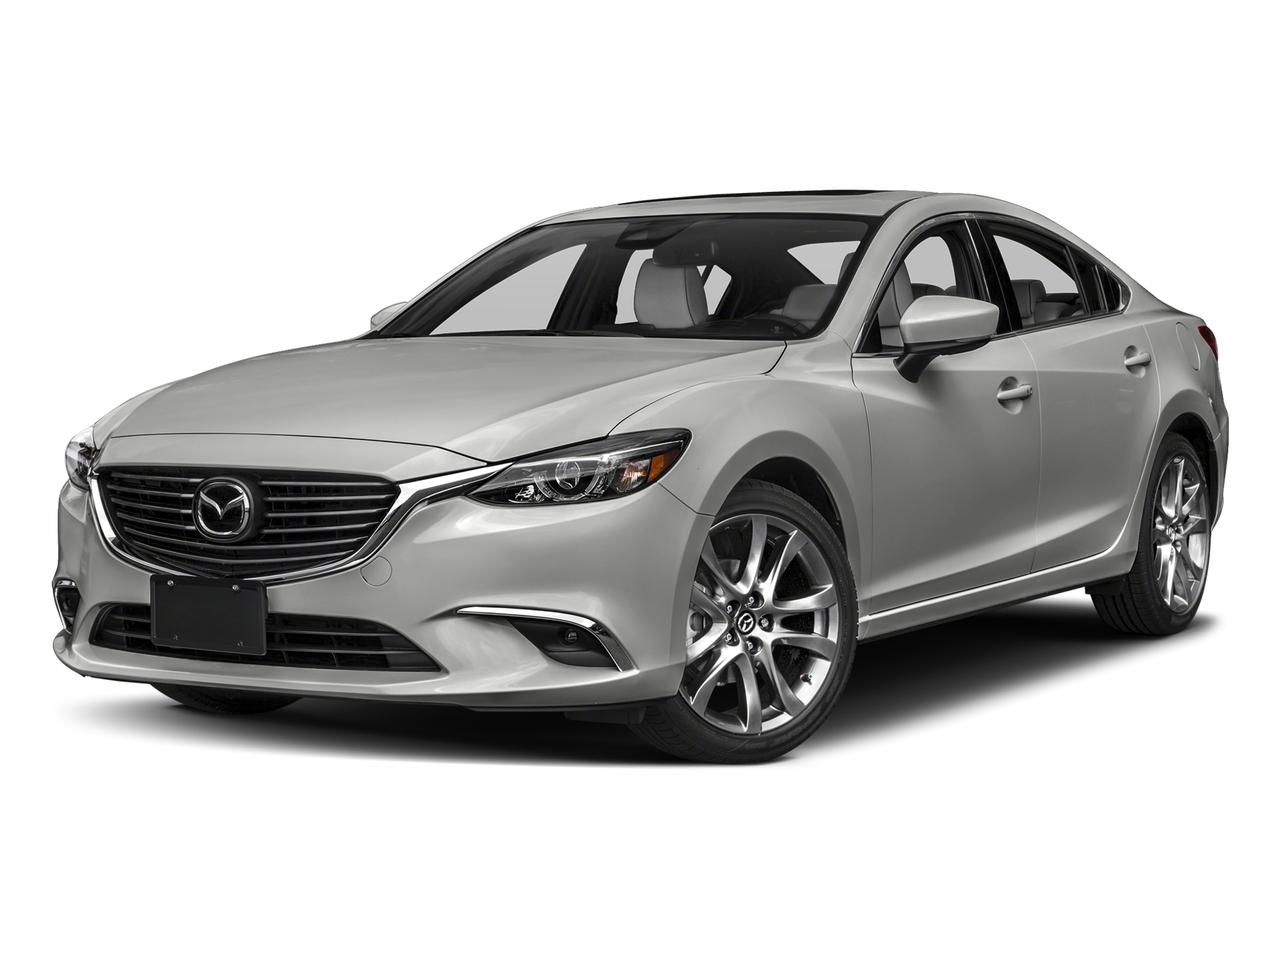 2017 Mazda Mazda6 Vehicle Photo in San Antonio, TX 78257